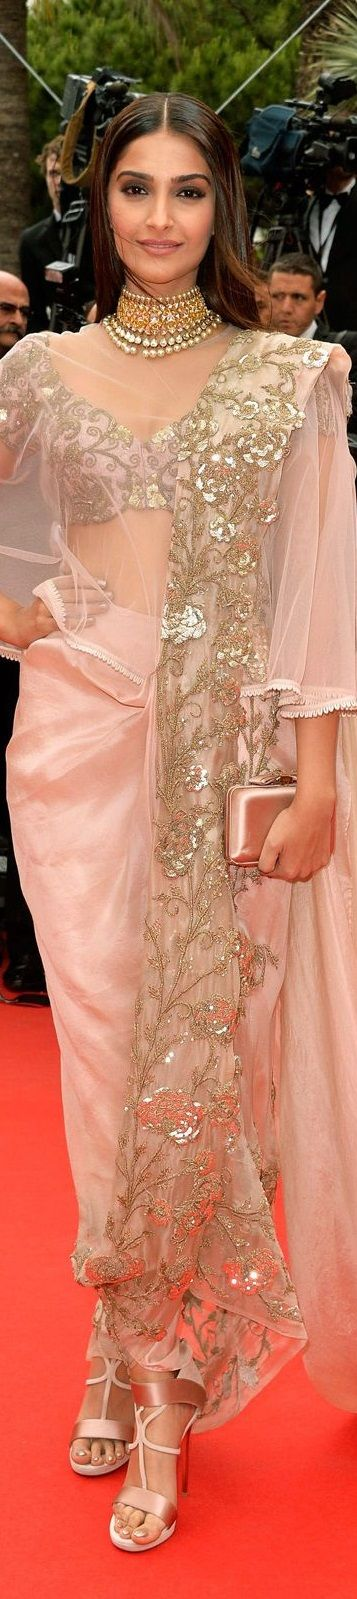 Sonam Kapoor in Anamika Khanna Cannes 2014                                                                                                                                                      More